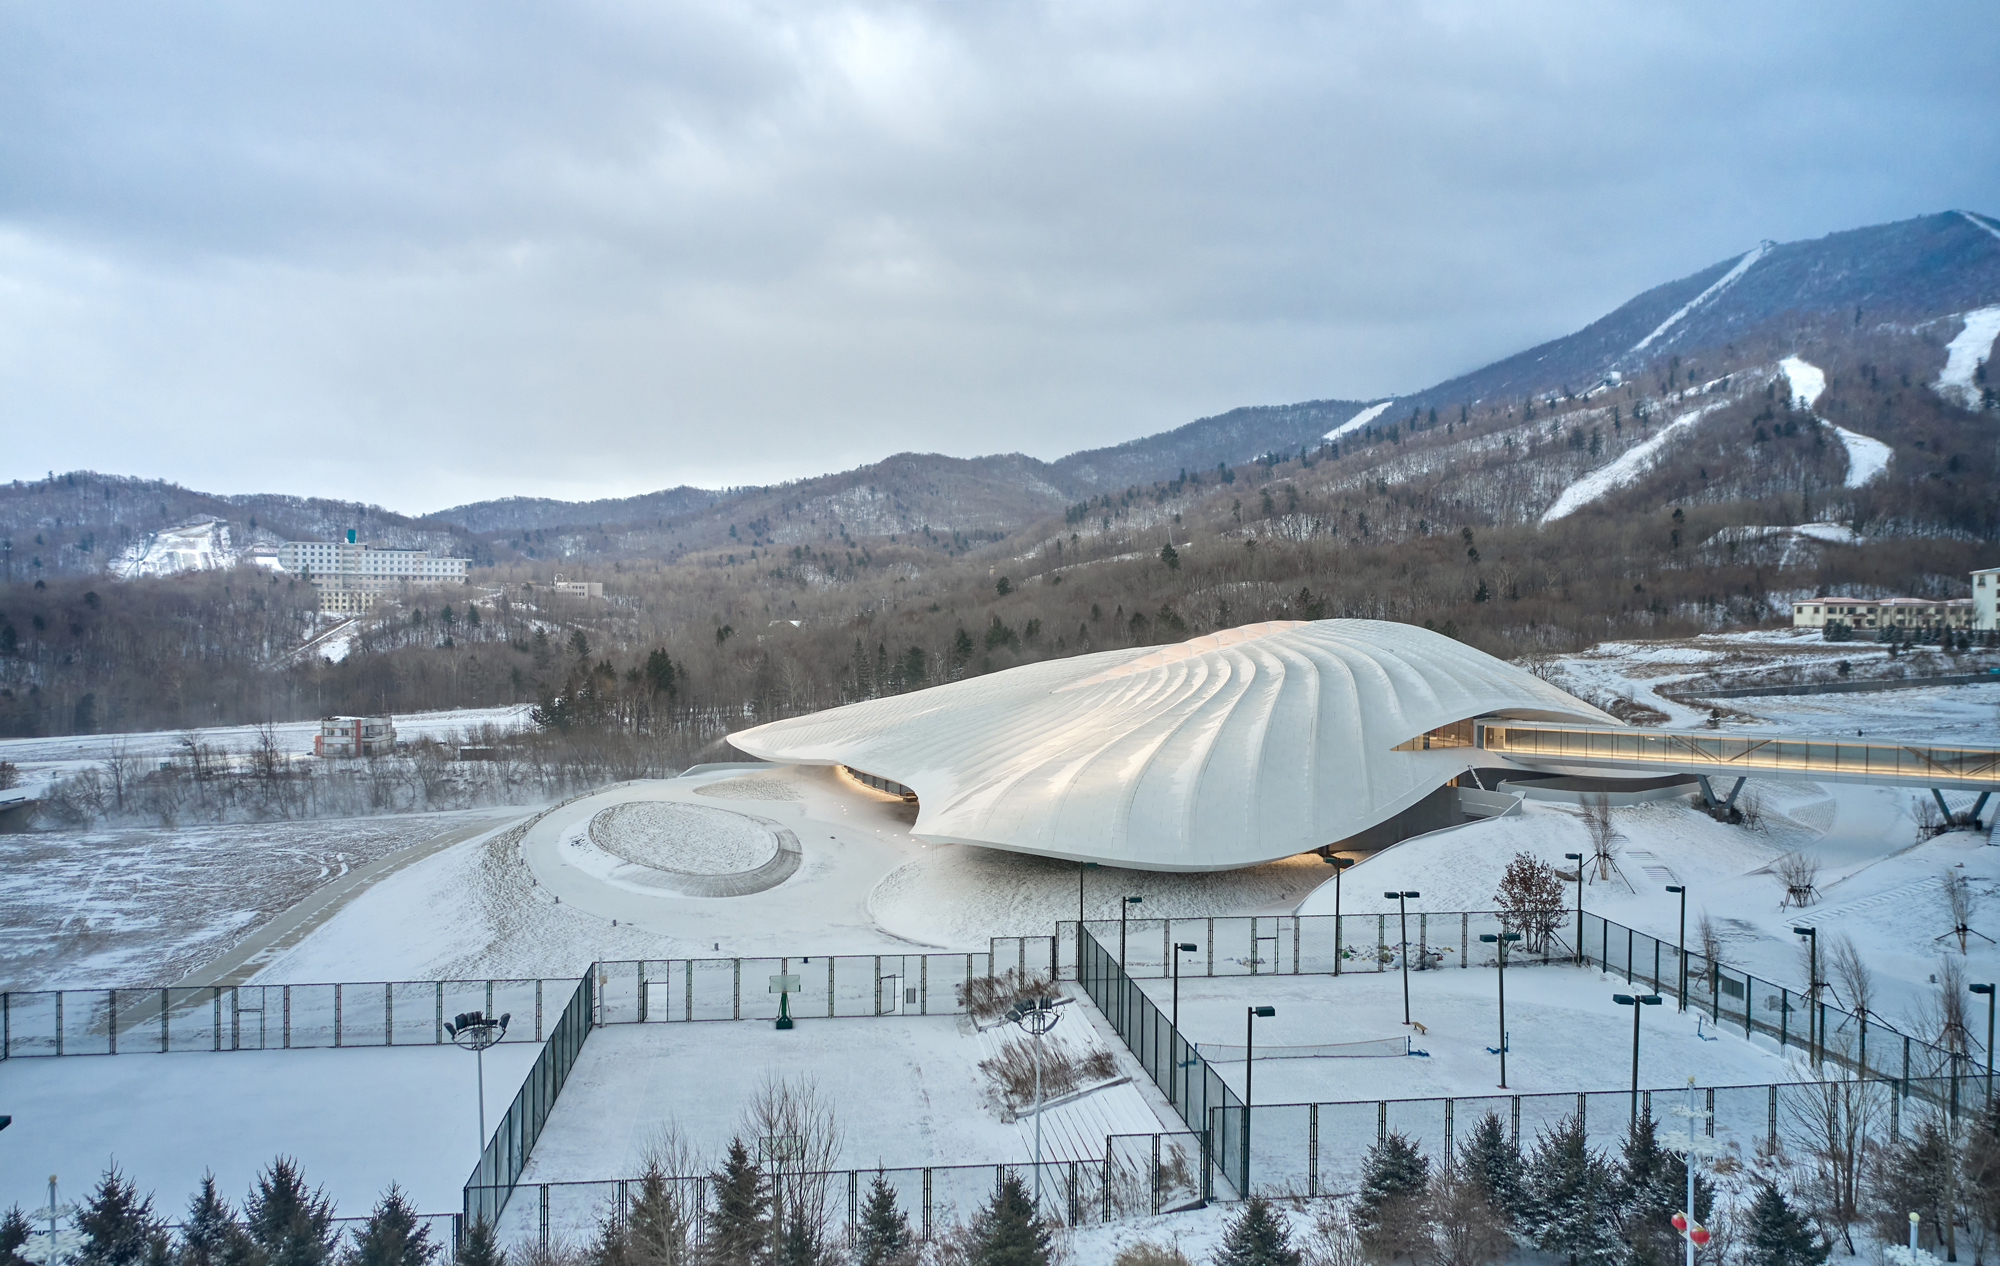 MAD's Yabuli Congress Center Nears Completion in China | ArchDaily